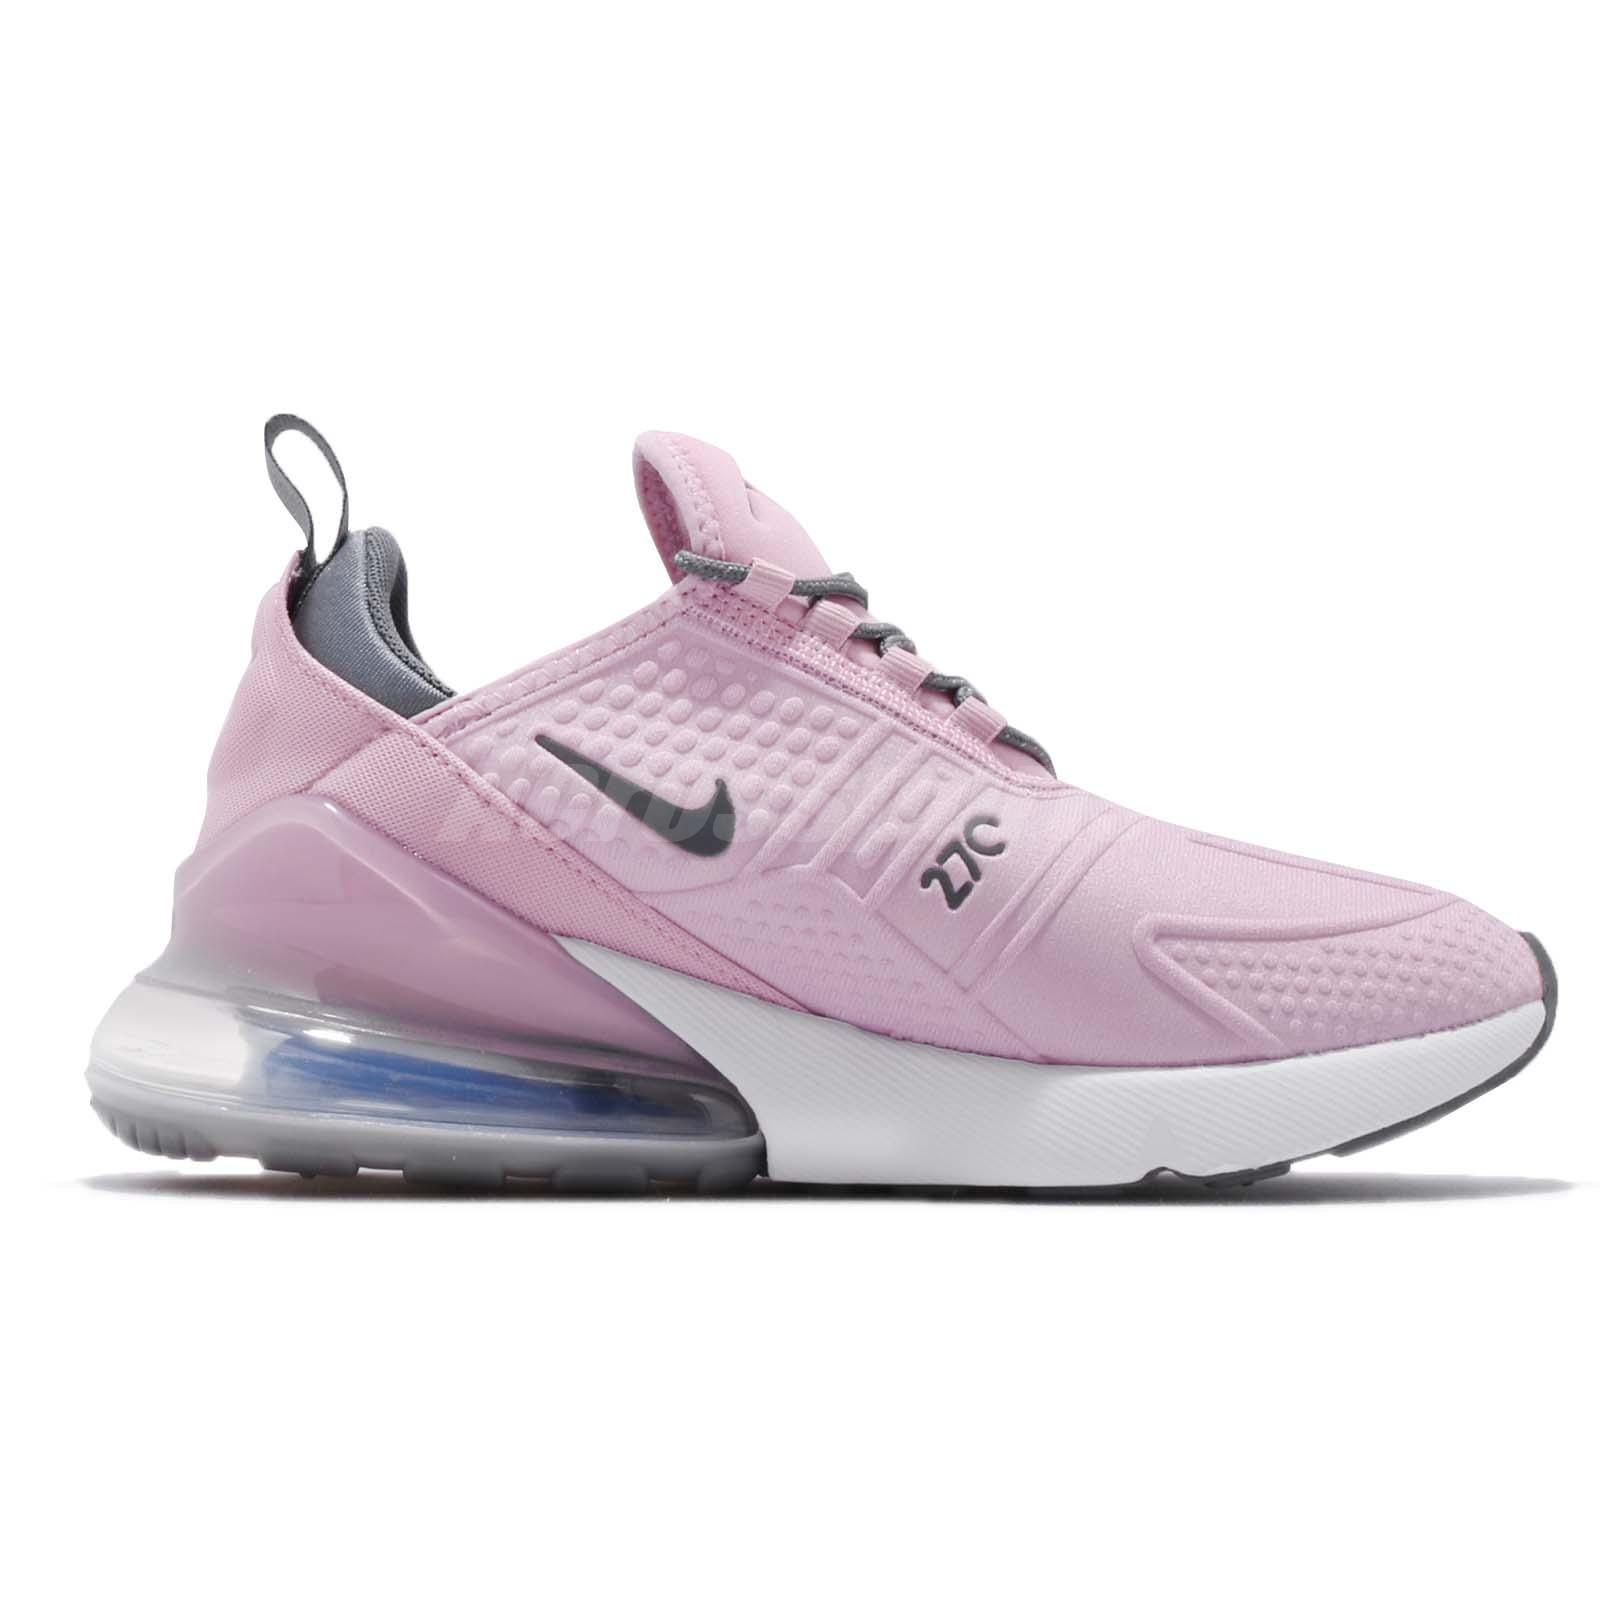 6f93f9ba8dc0 Nike Air Max 270 SE GS Pink Grey White Kid Youth Women Running Shoes ...